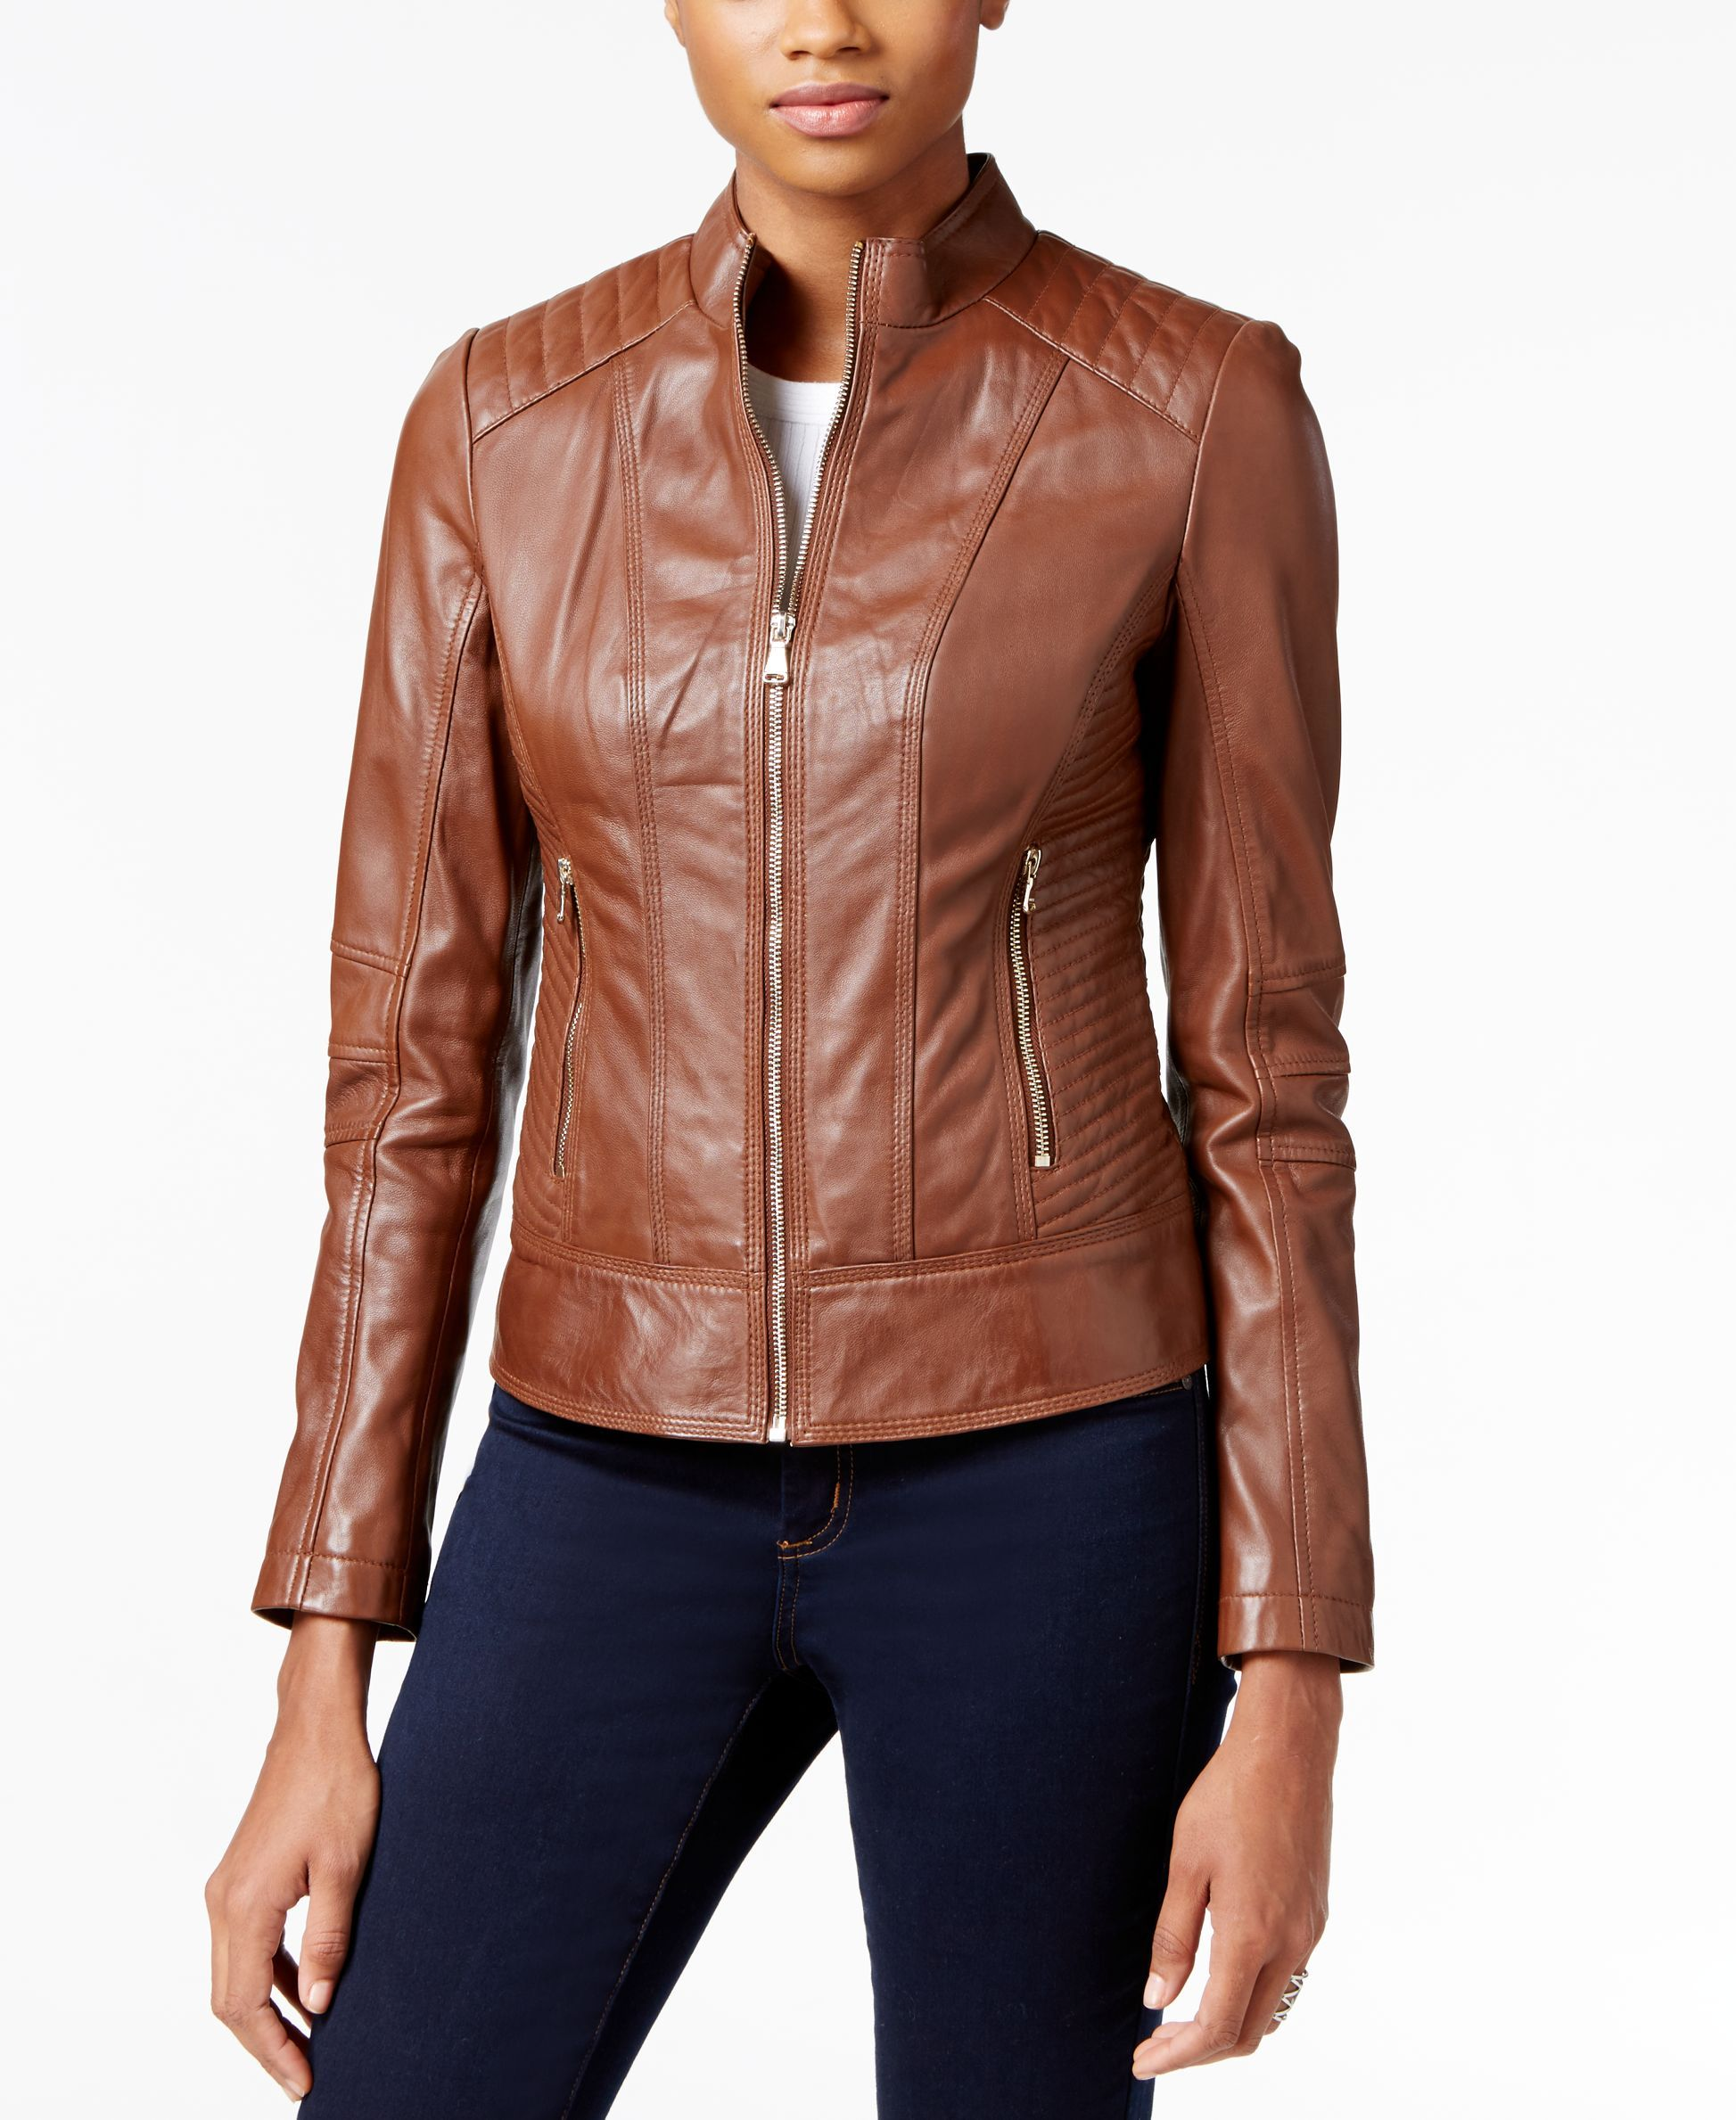 Guess Leather Bomber Jacket Leather Bomber Jacket Quilted Bomber Jacket Brown Bomber Jacket [ 2378 x 1947 Pixel ]